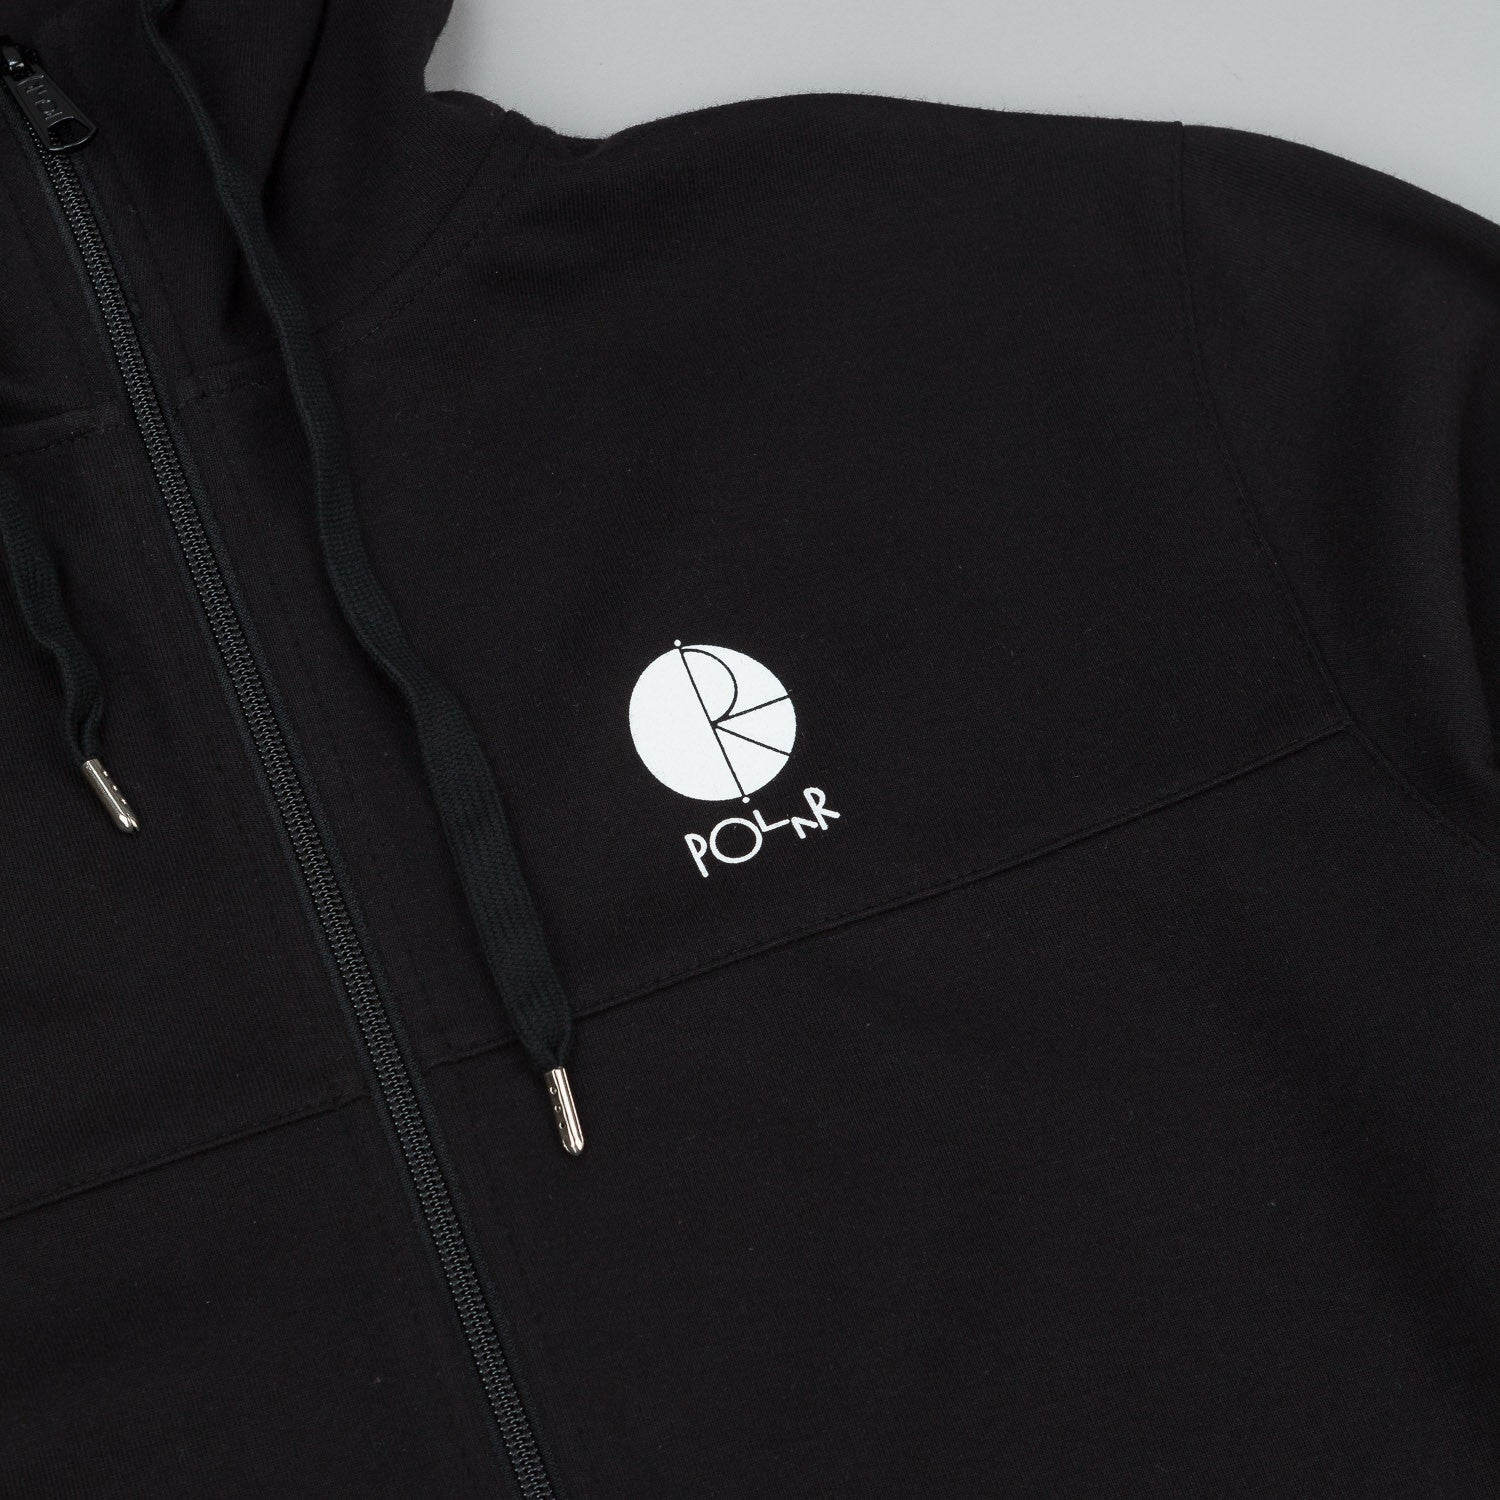 Polar Fill Logo Tec Zip Hooded Sweatshirt - Black / Black / White Fill Logo